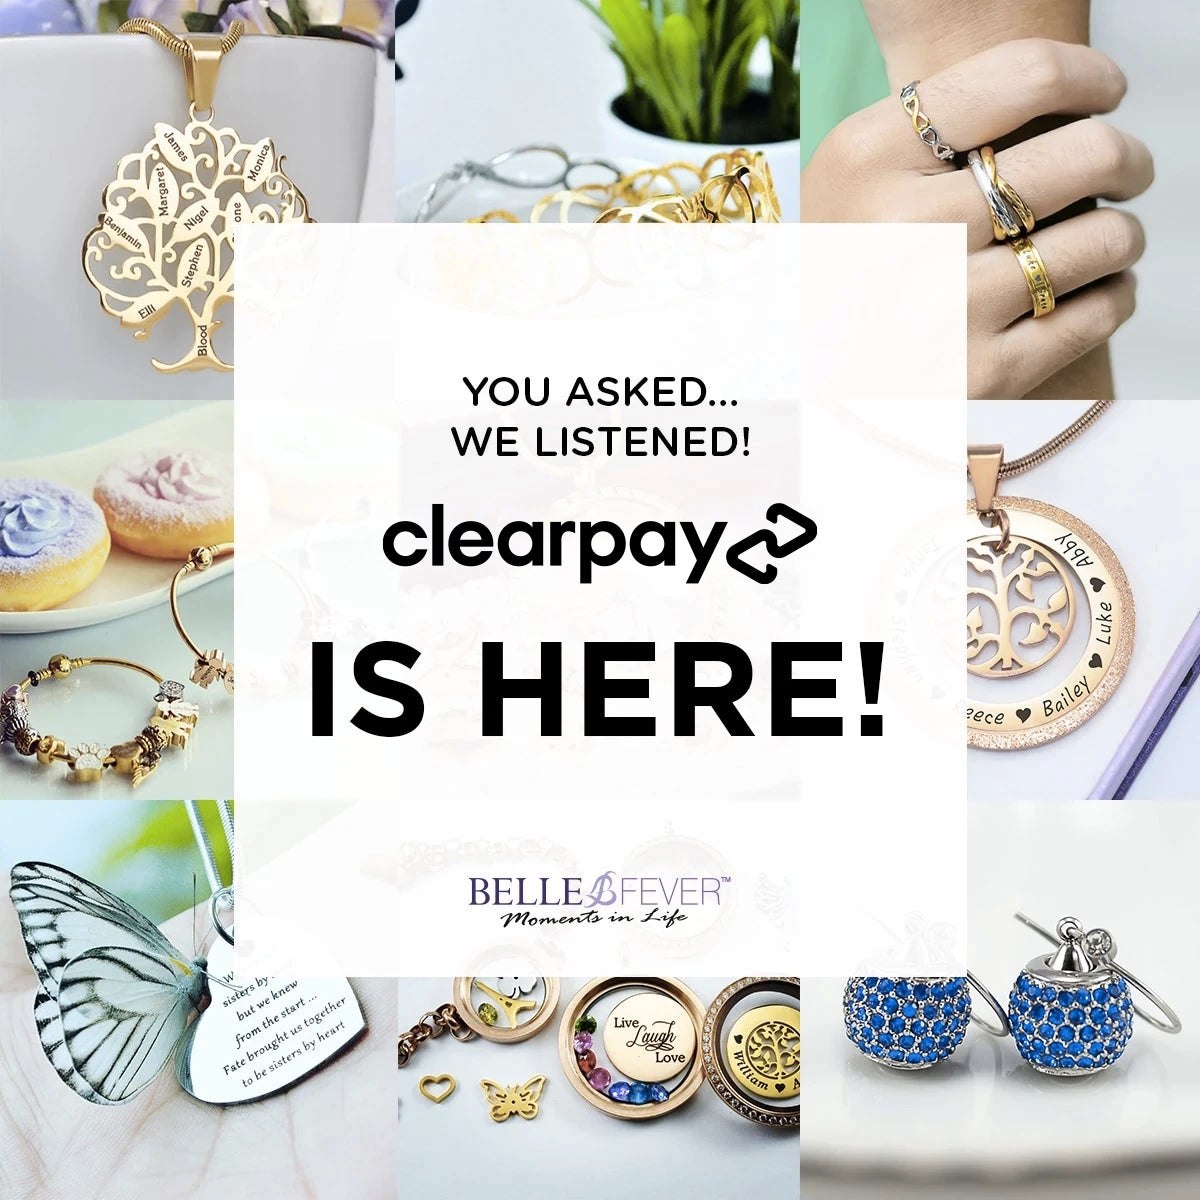 Belle Fever Clearpay